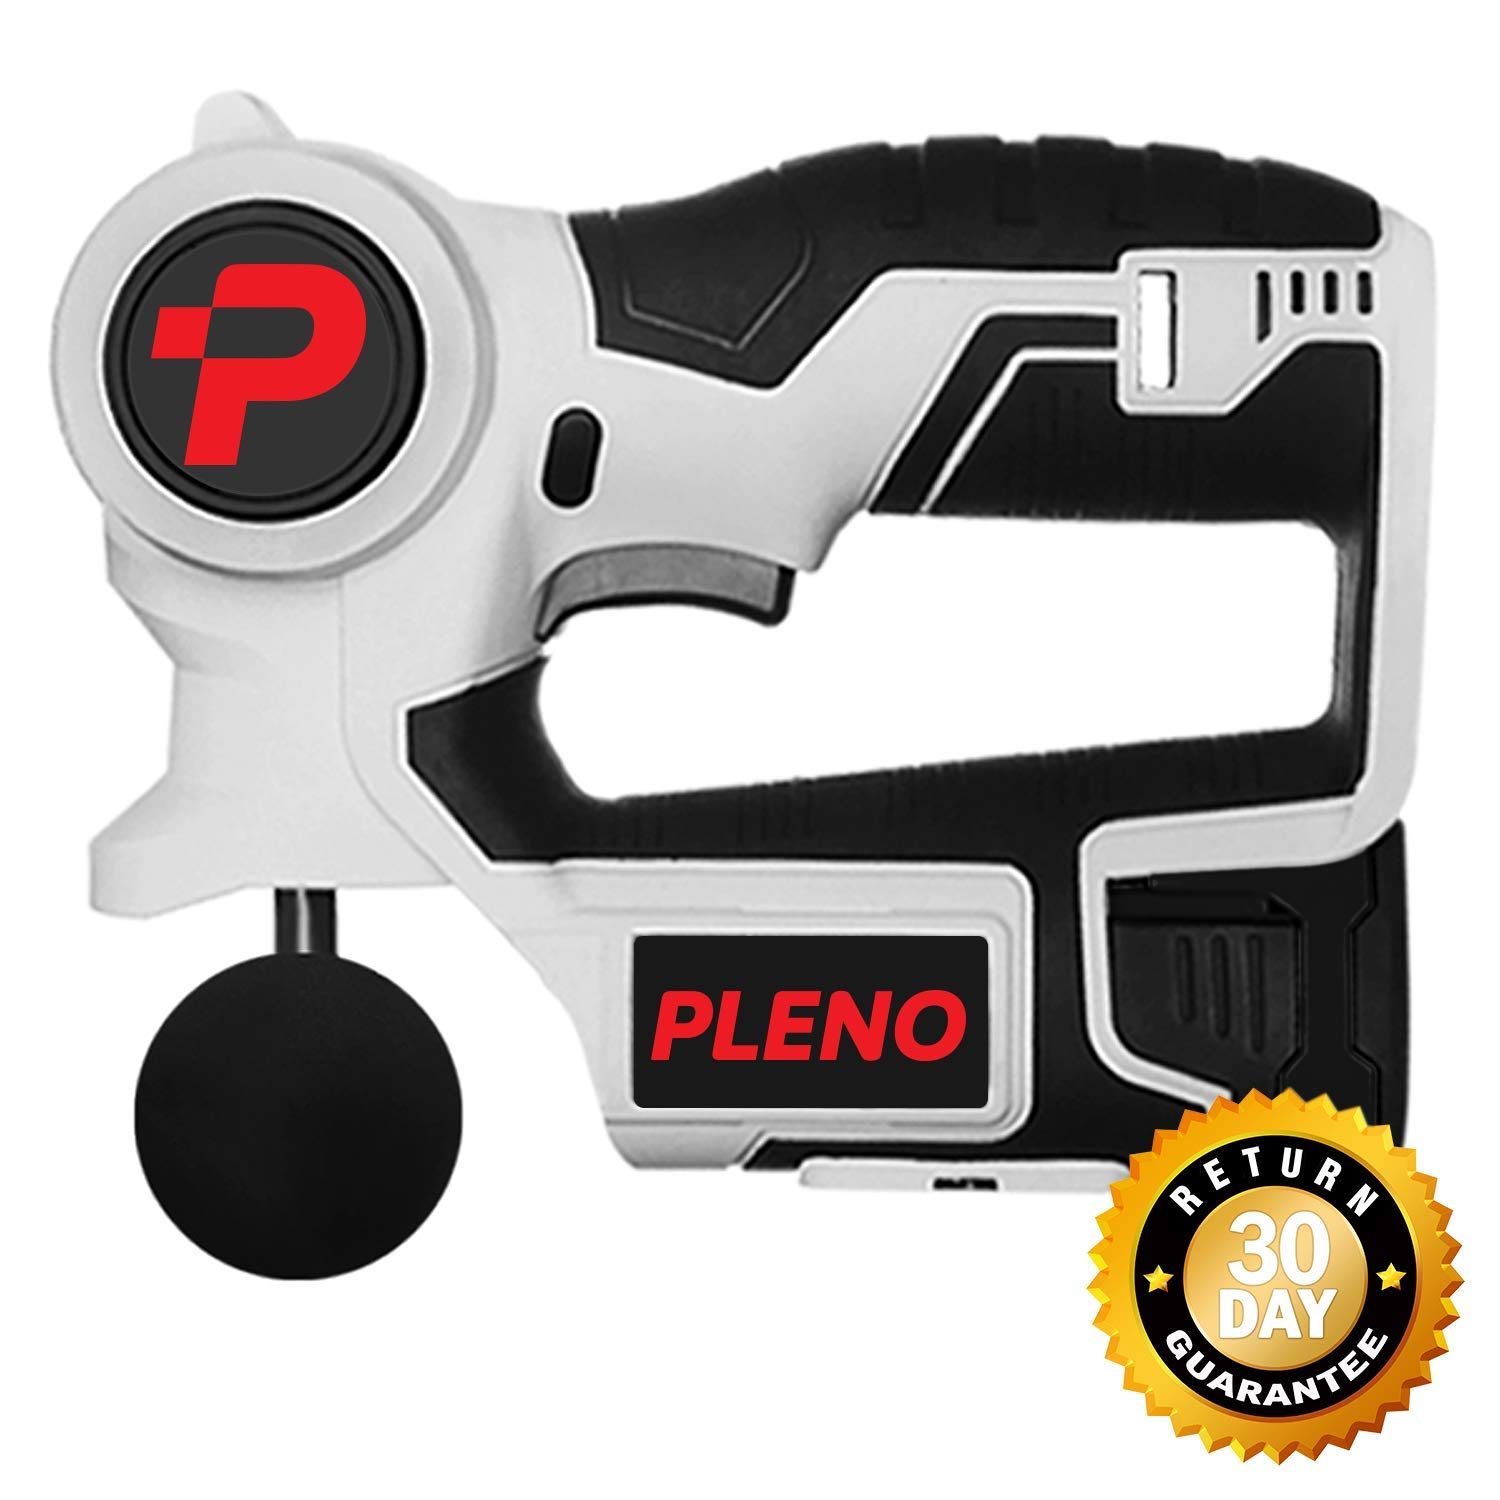 Pleno M3.0 Powerful Handheld Tissue Massager Gun